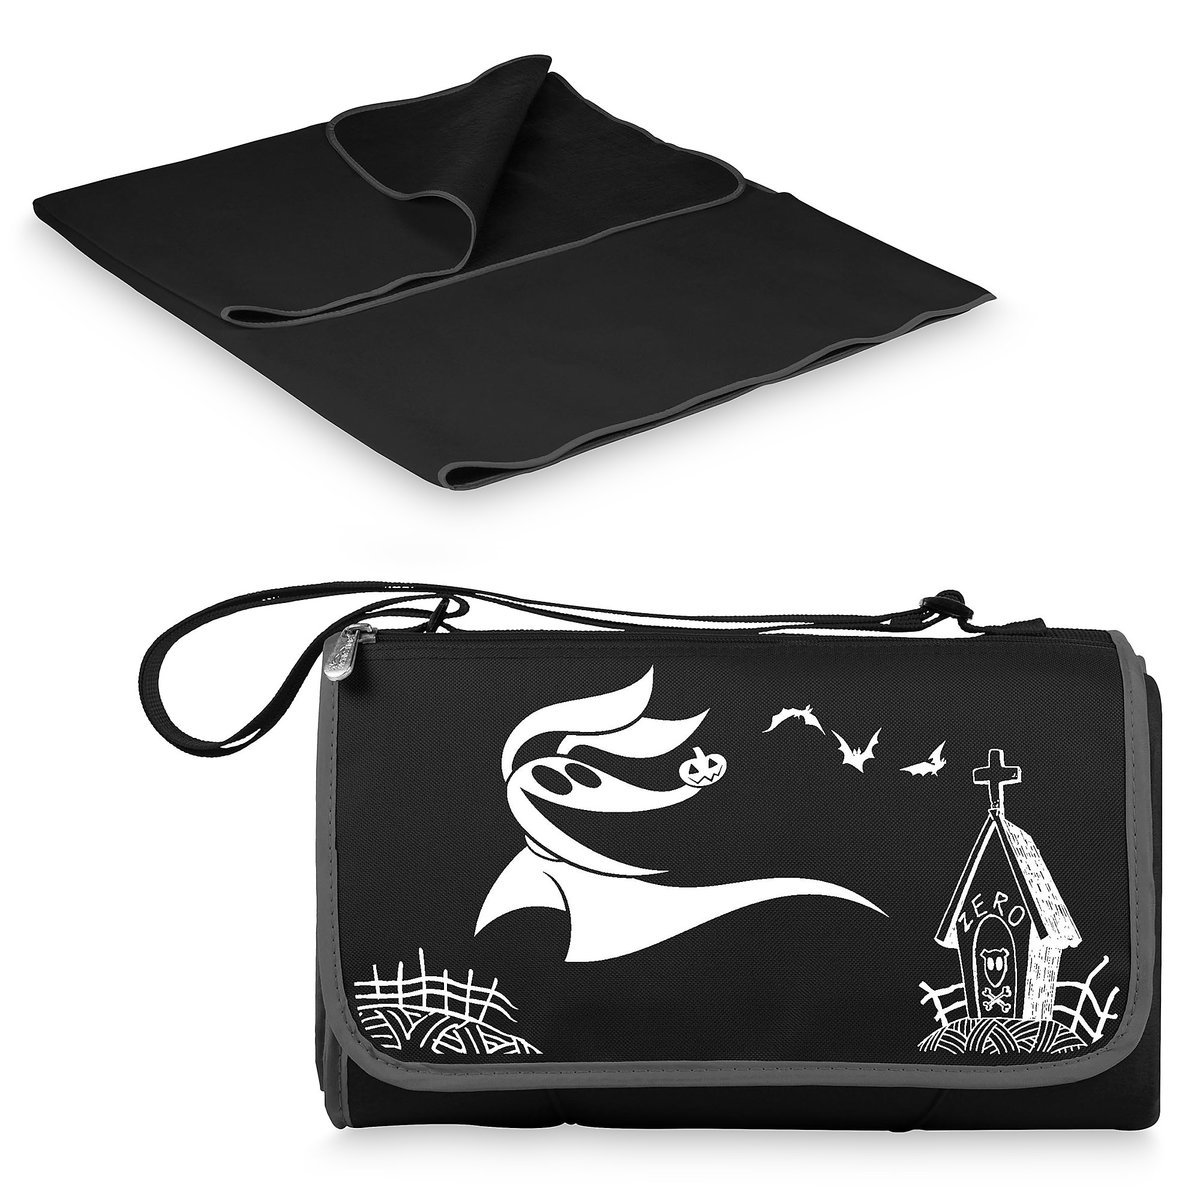 4e04e465c12 Product Image of Zero Blanket Tote - The Nightmare Before Christmas   1